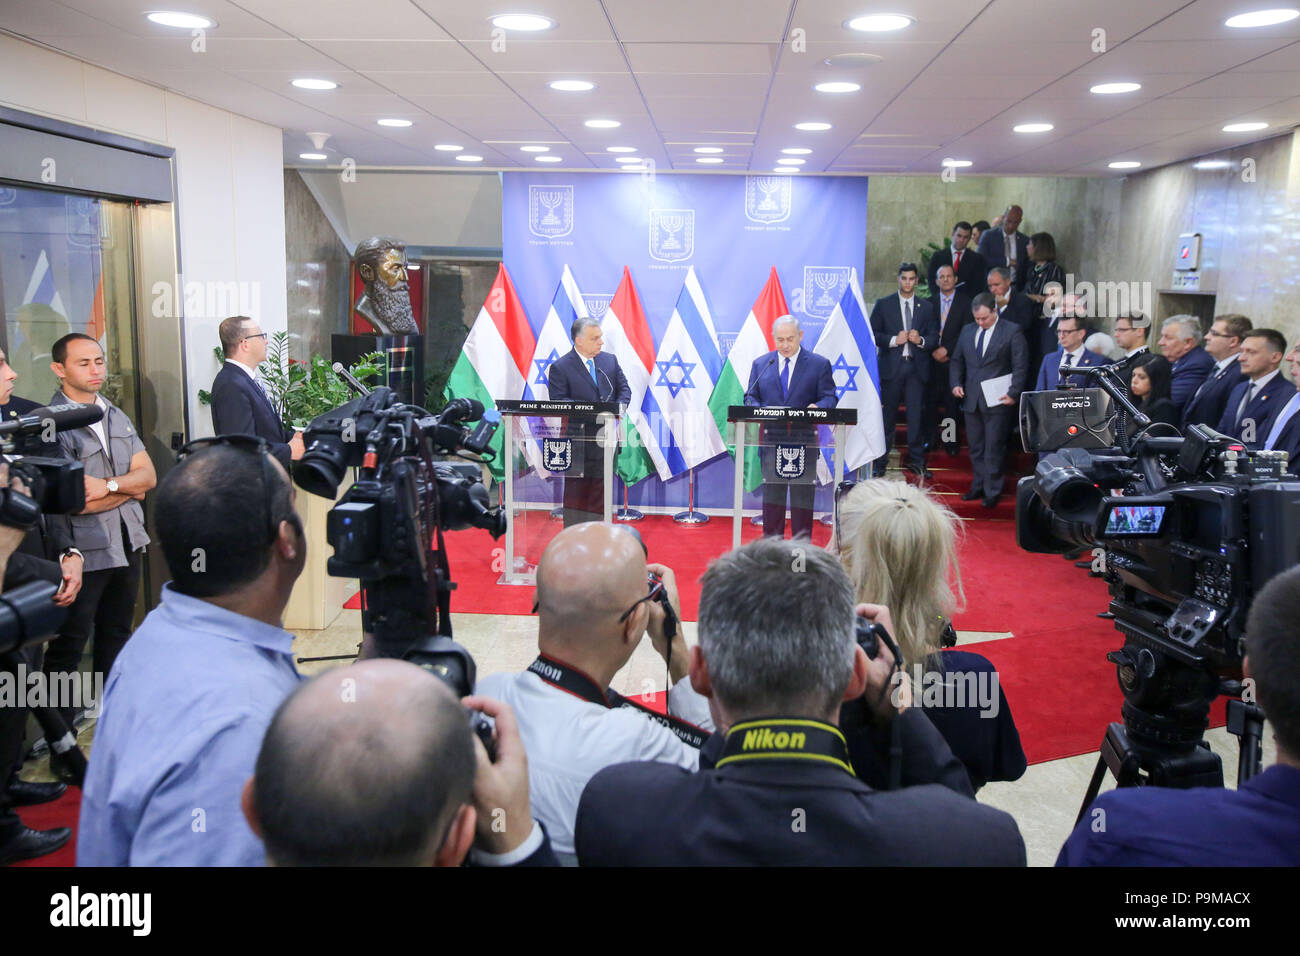 Jerusalem. 19th July, 2018. Israeli Prime Minister Benjamin Netanyahu (R, Center) and Hungarian Prime Minister Viktor Orban (L, Center) attend a joint press conference in Jerusalem, on July 19, 2018. Viktor Orban, known for his nationalist policies that have raised worries among Hungary's Jewish community, pledged 'zero tolerance' for anti-Semitism on a visit to Israel Thursday. Credit: JINI/Marc Israel Sellem/Xinhua/Alamy Live News - Stock Image